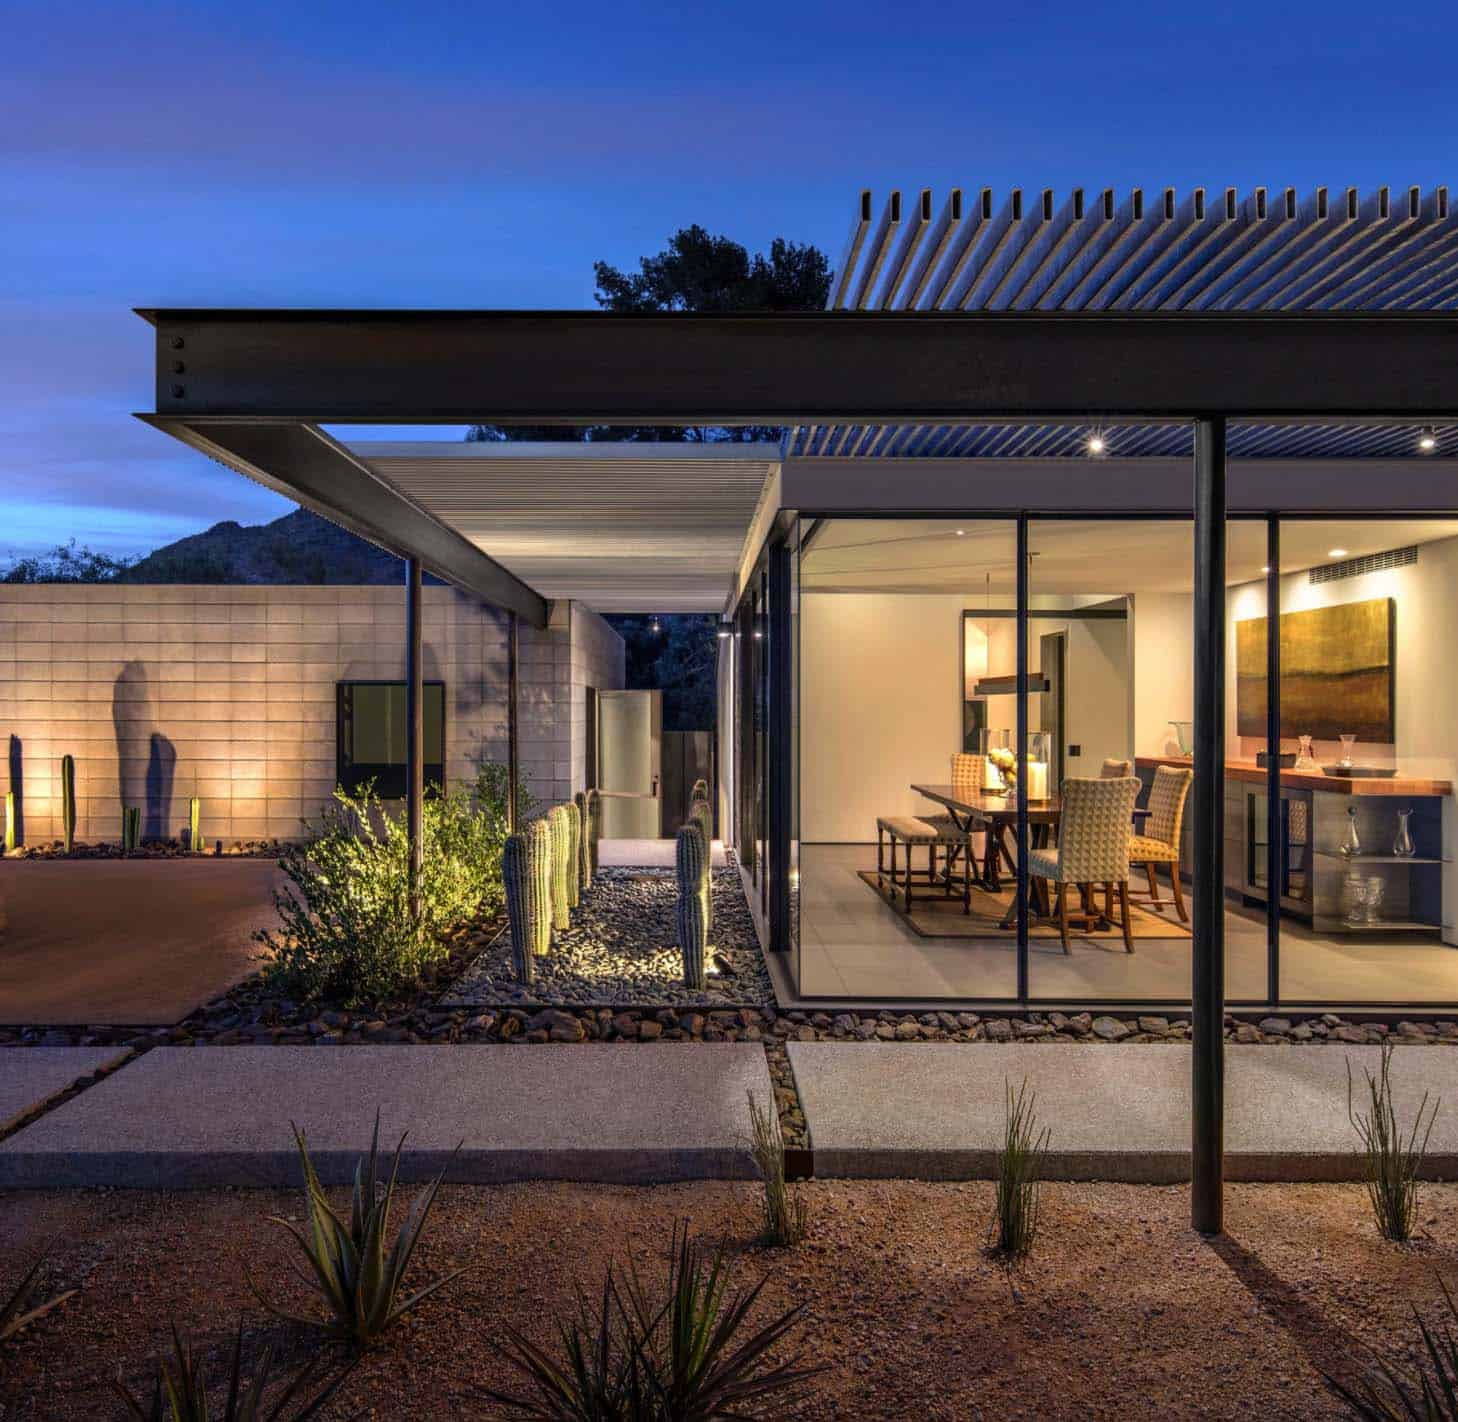 Modernist sonoran desert home flooded with natural light for Home architecture